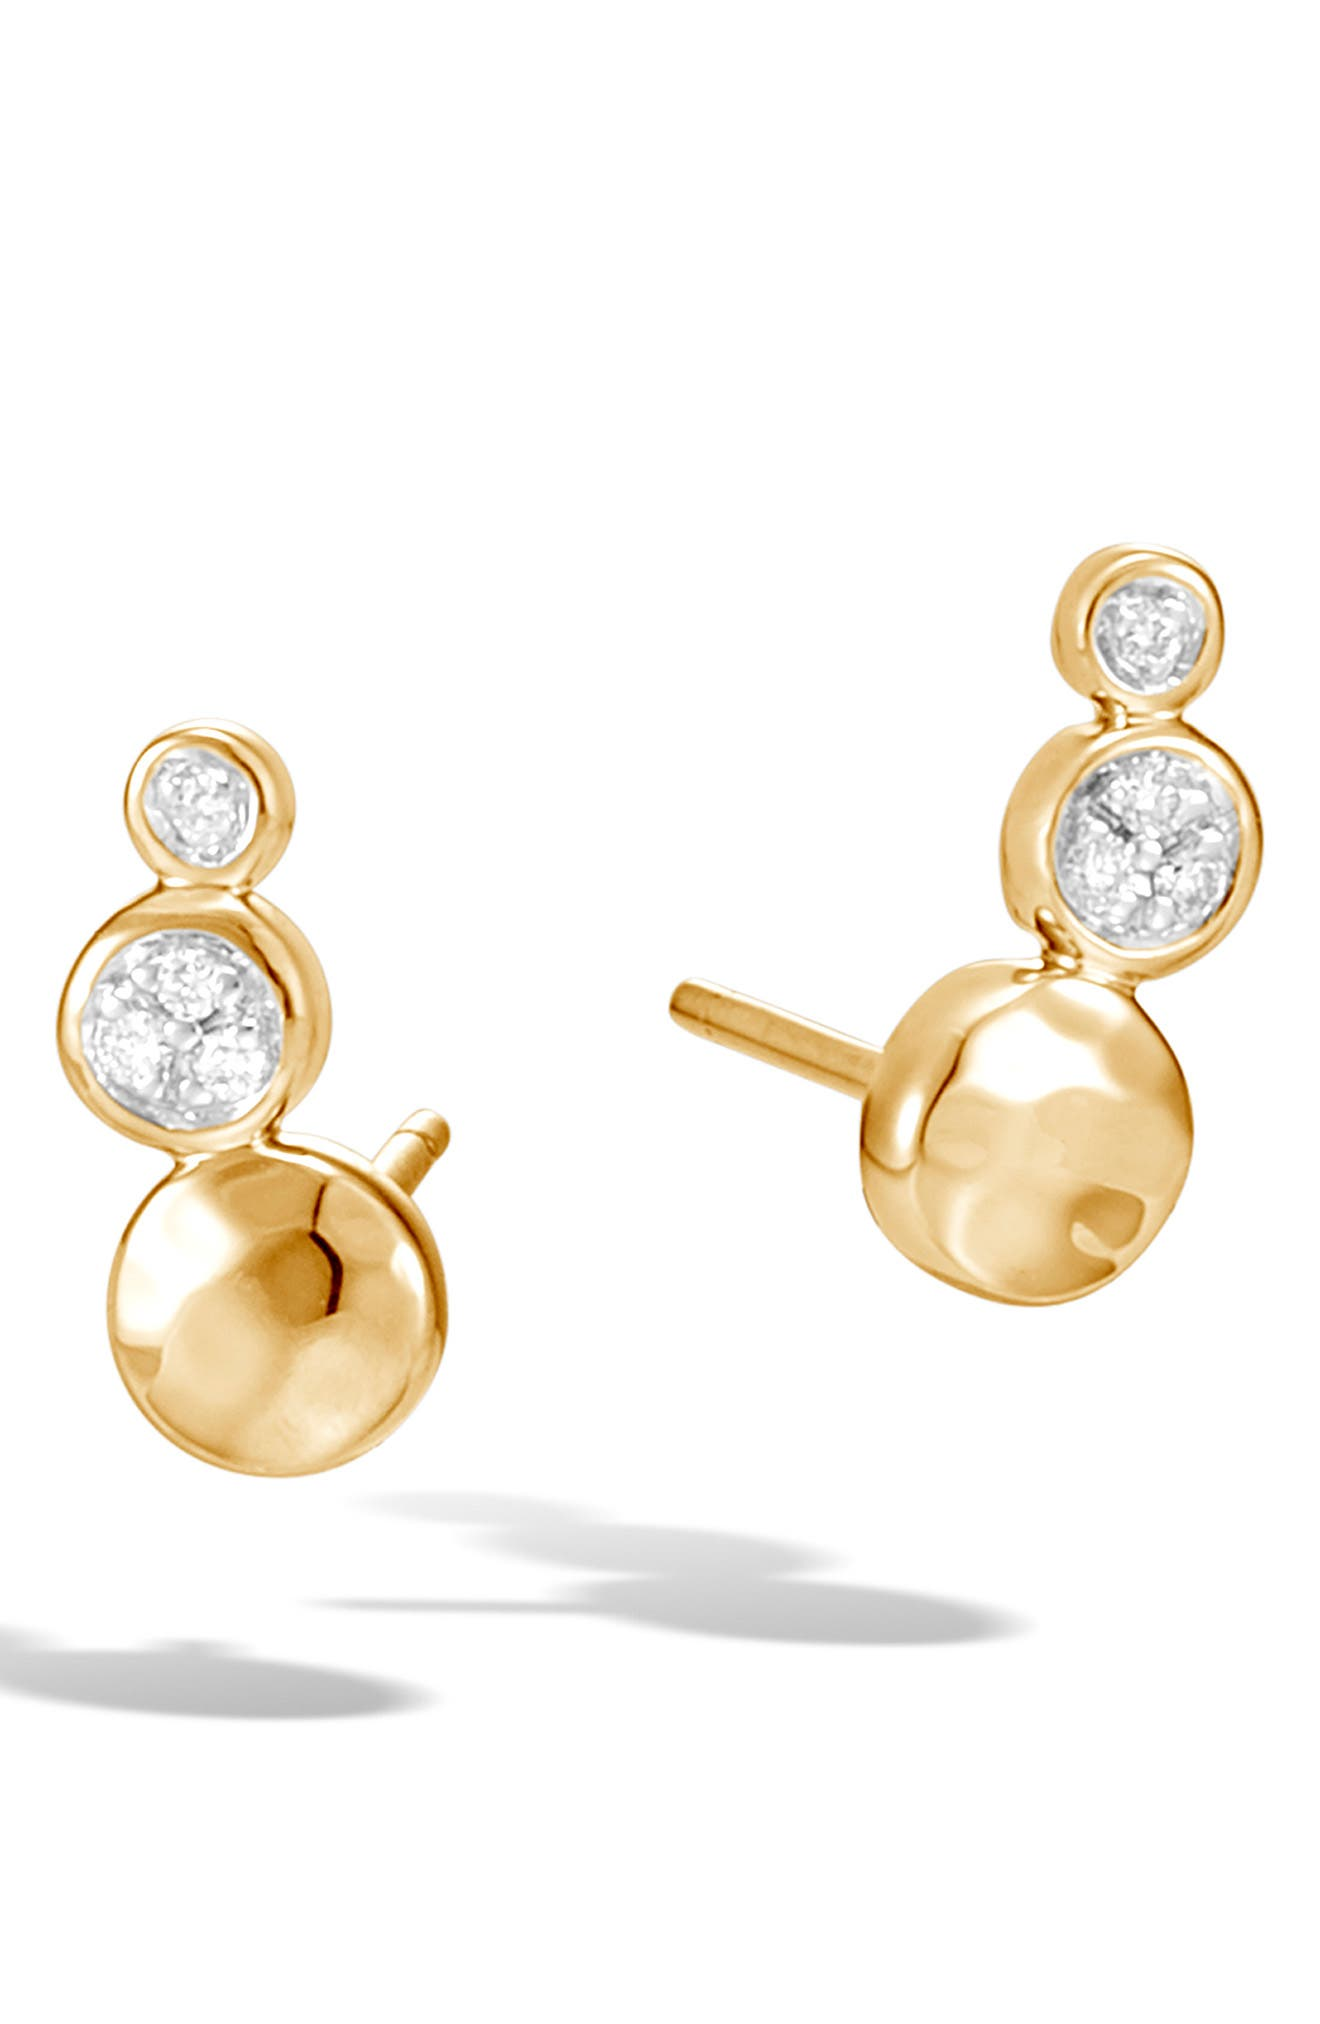 18K Yellow Gold Dot Hammered Pave Diamond Stud Earrings in 18Kyg